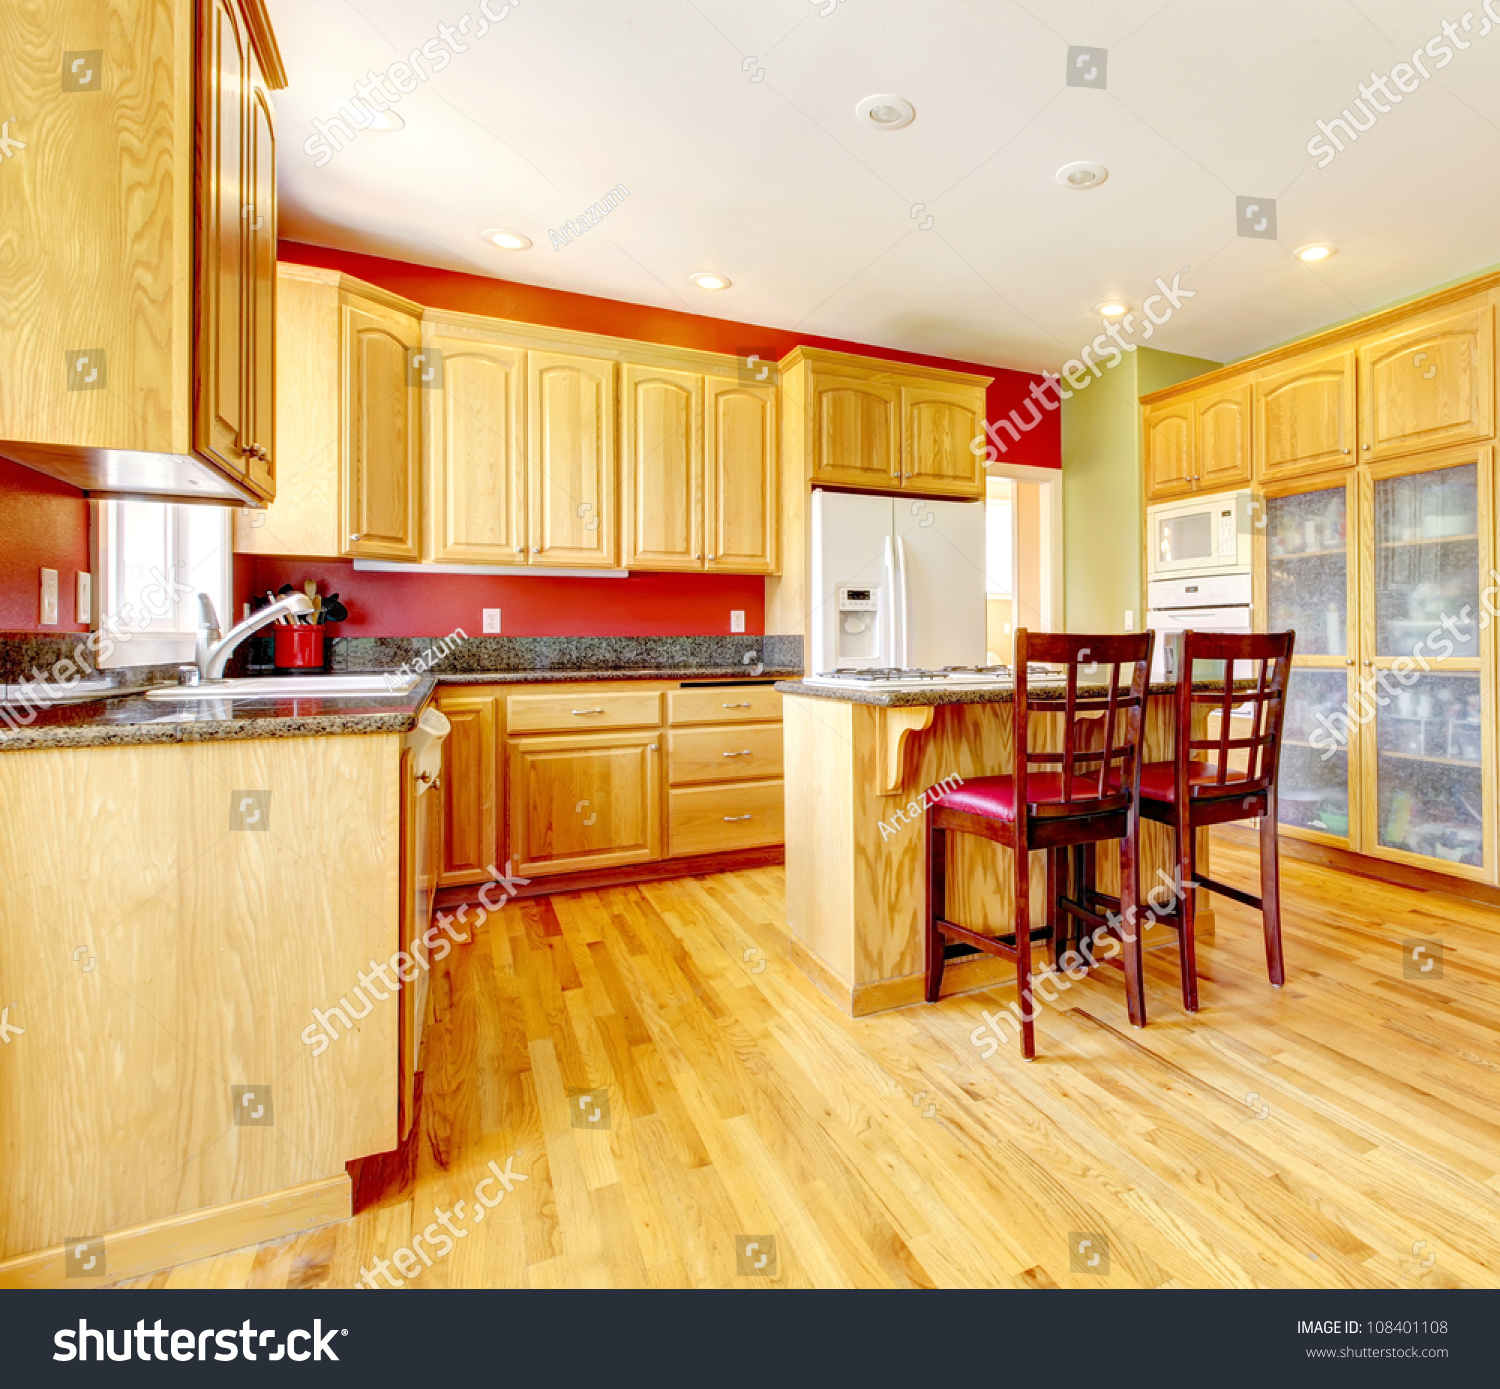 Red And Yellow Kitchen: Yellow Kitchen With Island And Yellow Wood With Red And